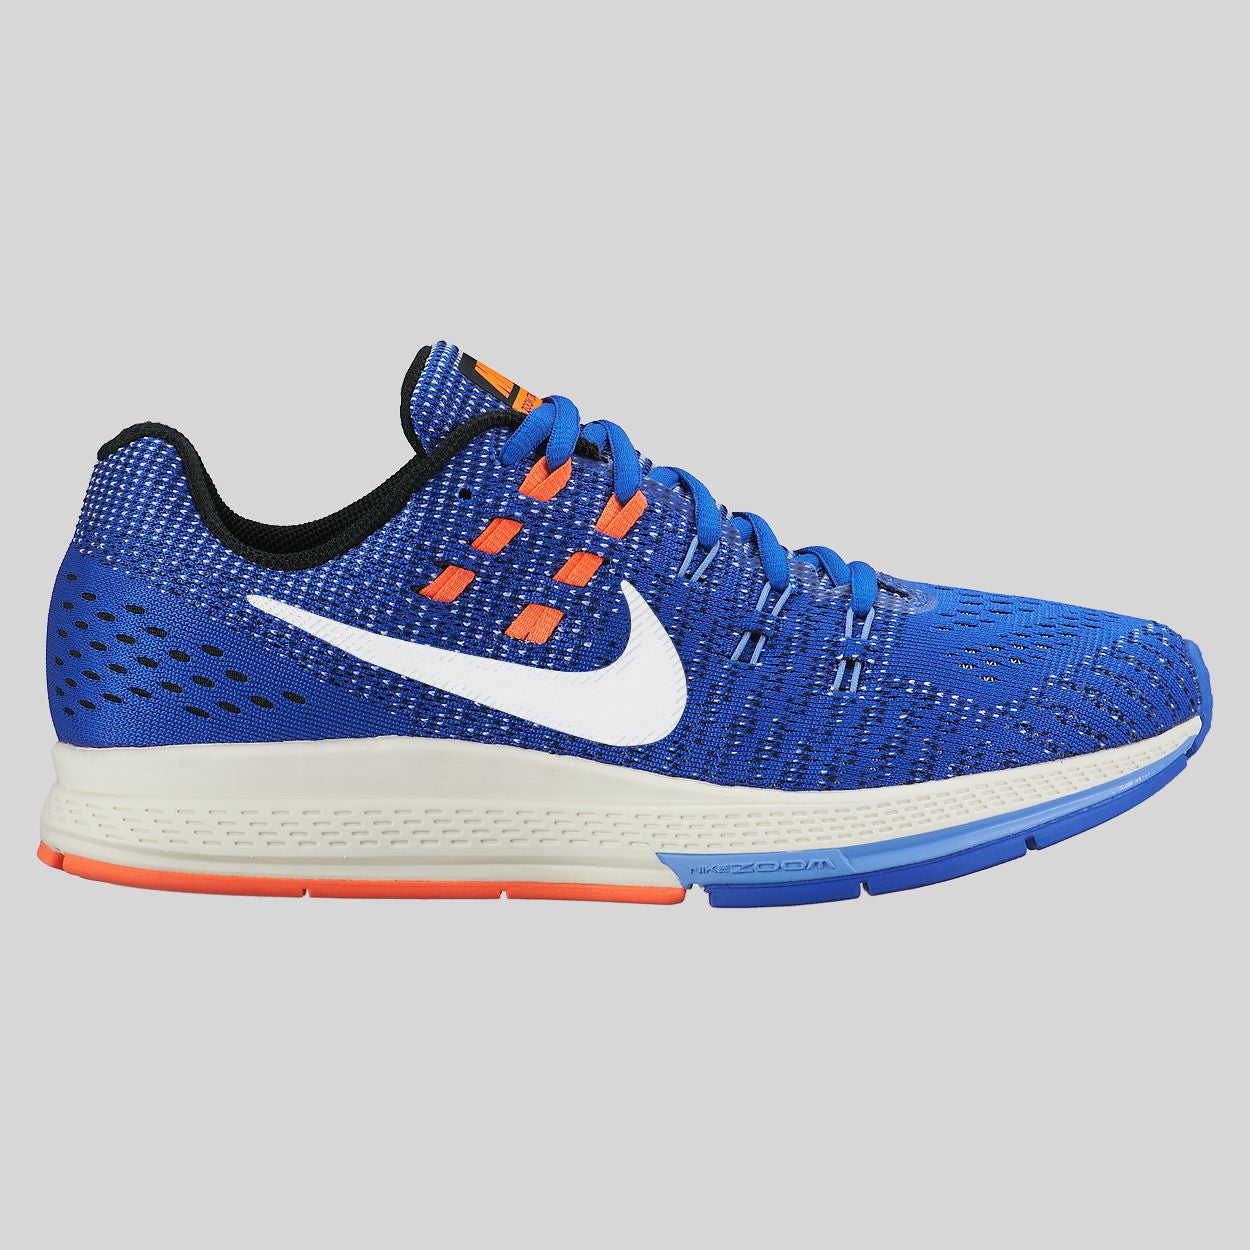 Nike Wmns Air Zoom Structure 19 Racer Blue Sail Hyper Orange (806584-408)